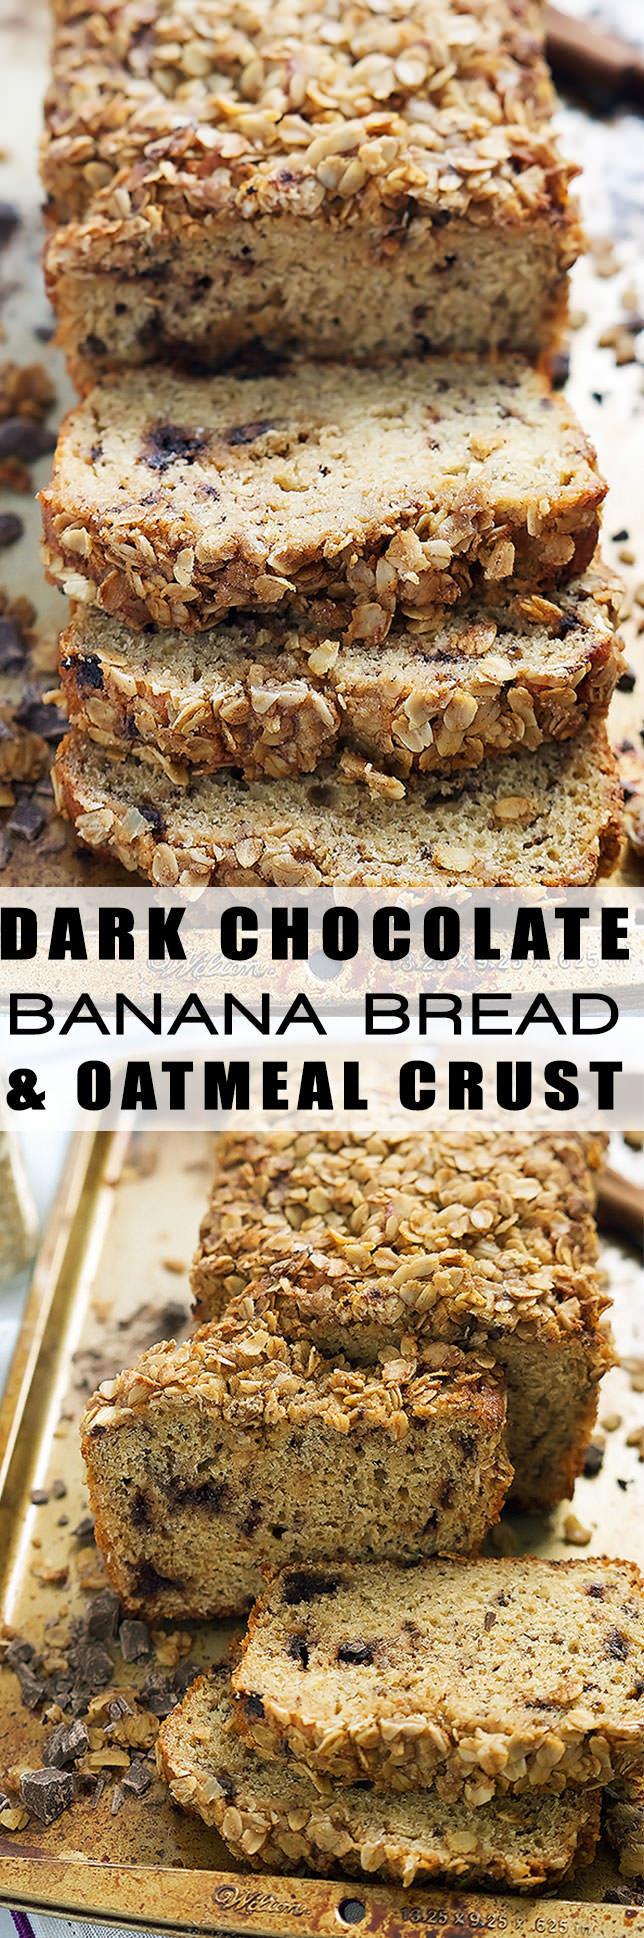 _Dark-Chocolate-Chunk-Banana-Bread-with-Brown-Sugar-Oatmeal-Crunch_